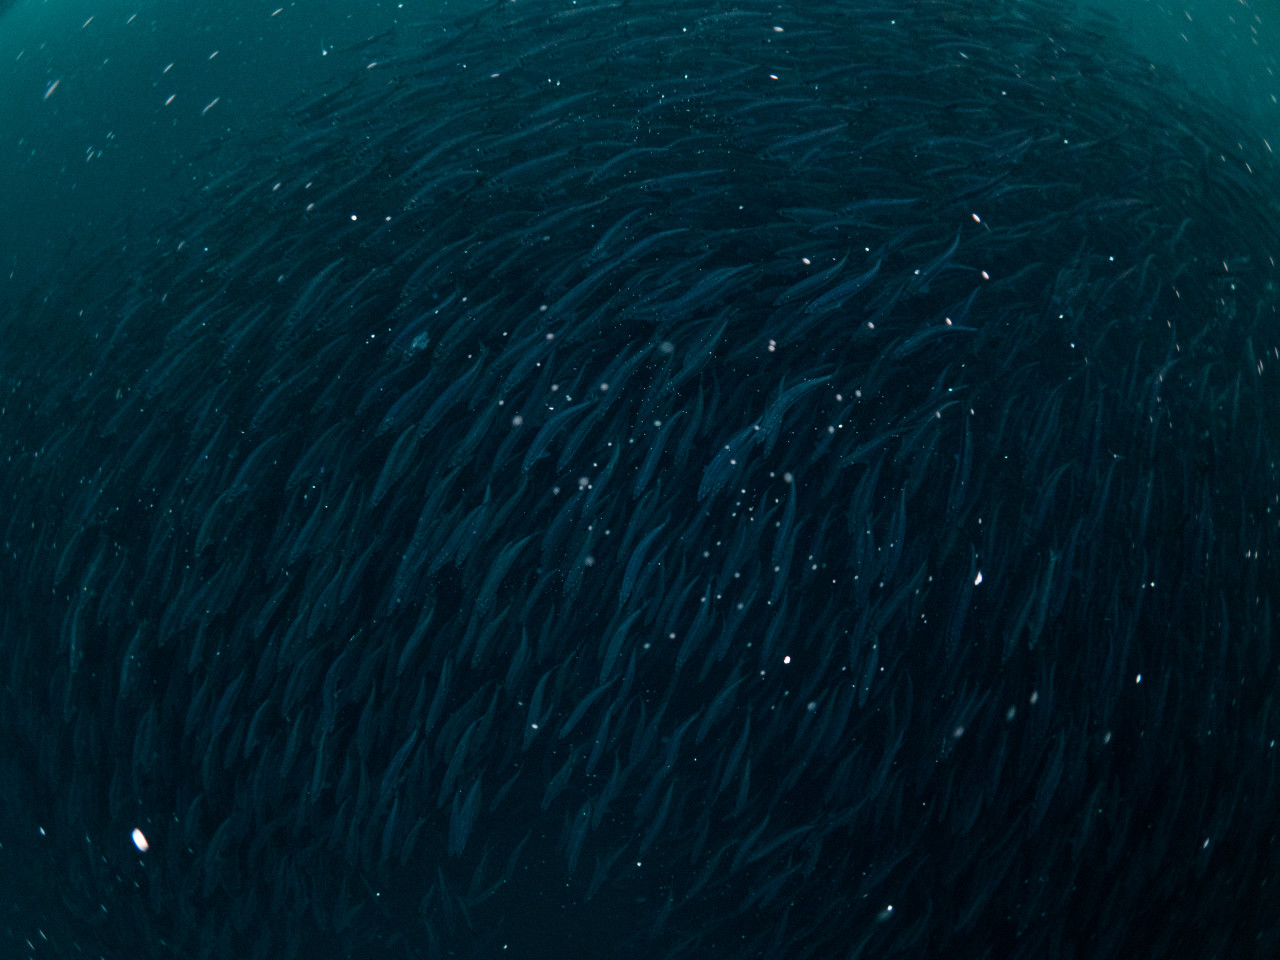 School of herring trying to escape